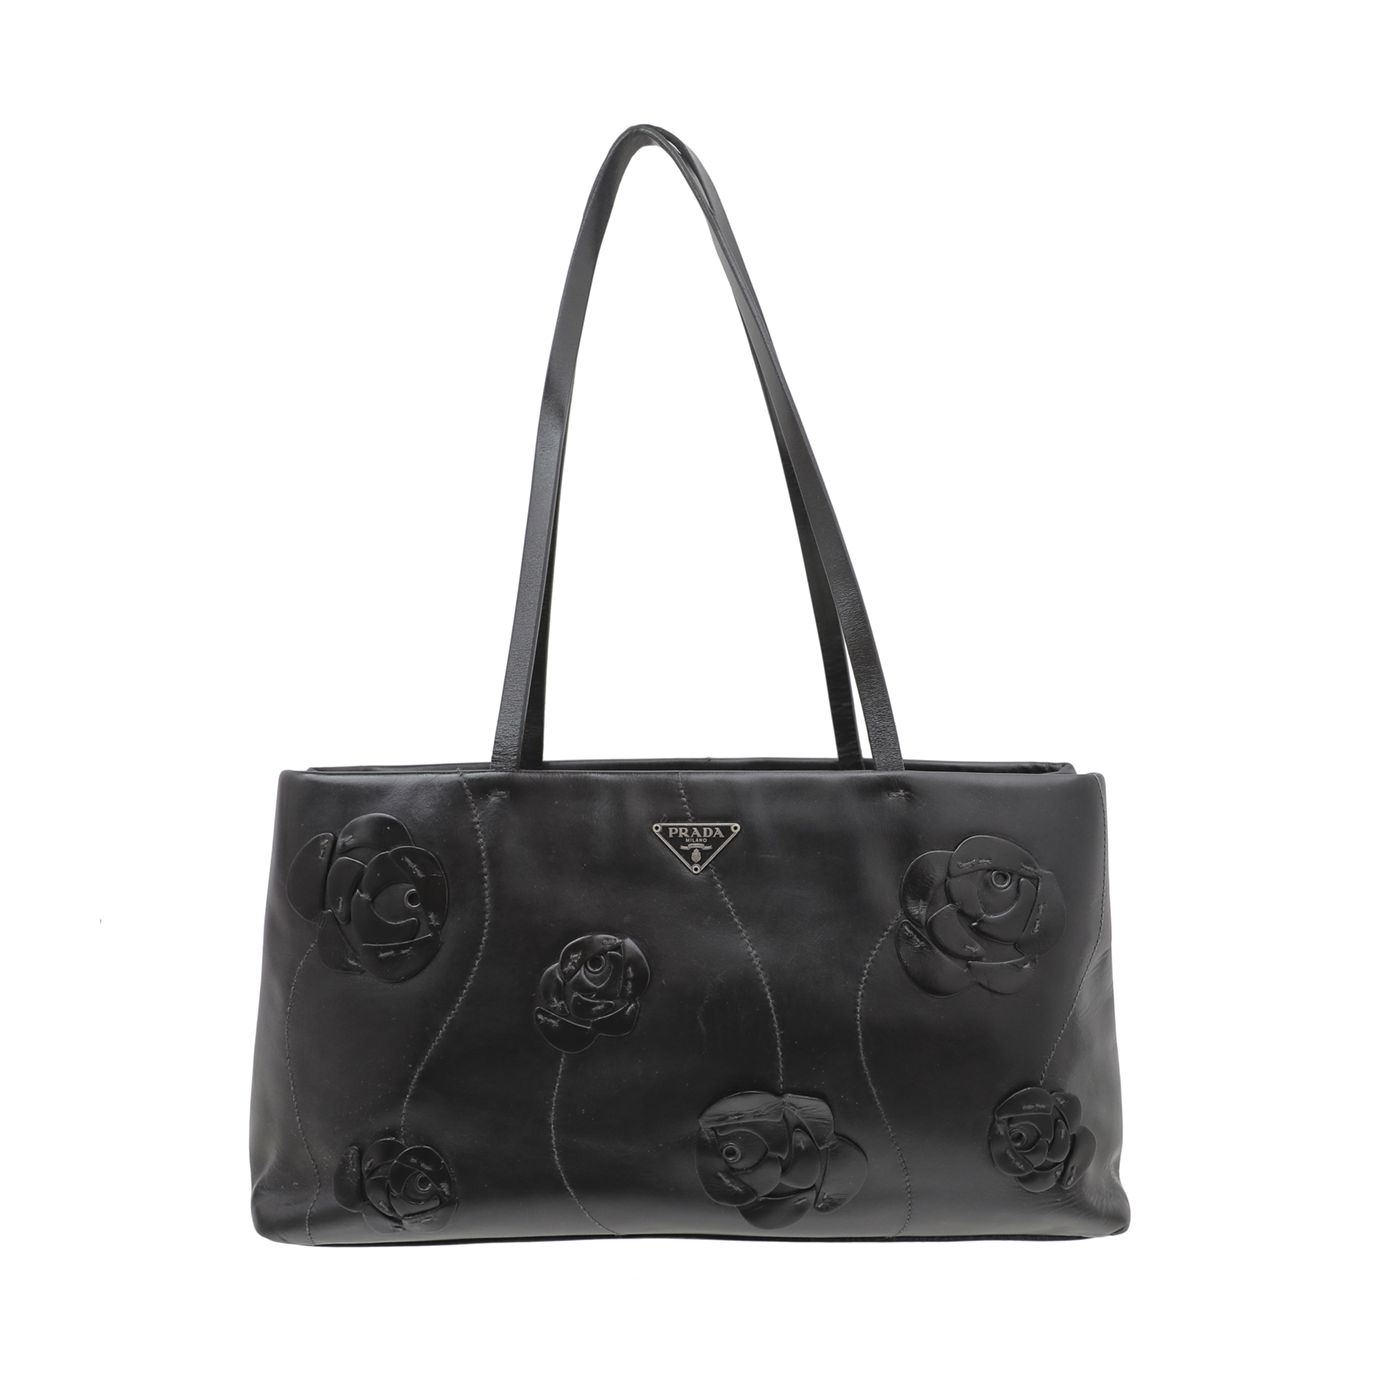 Prada Black Vintage Flower Applique Tote Bag